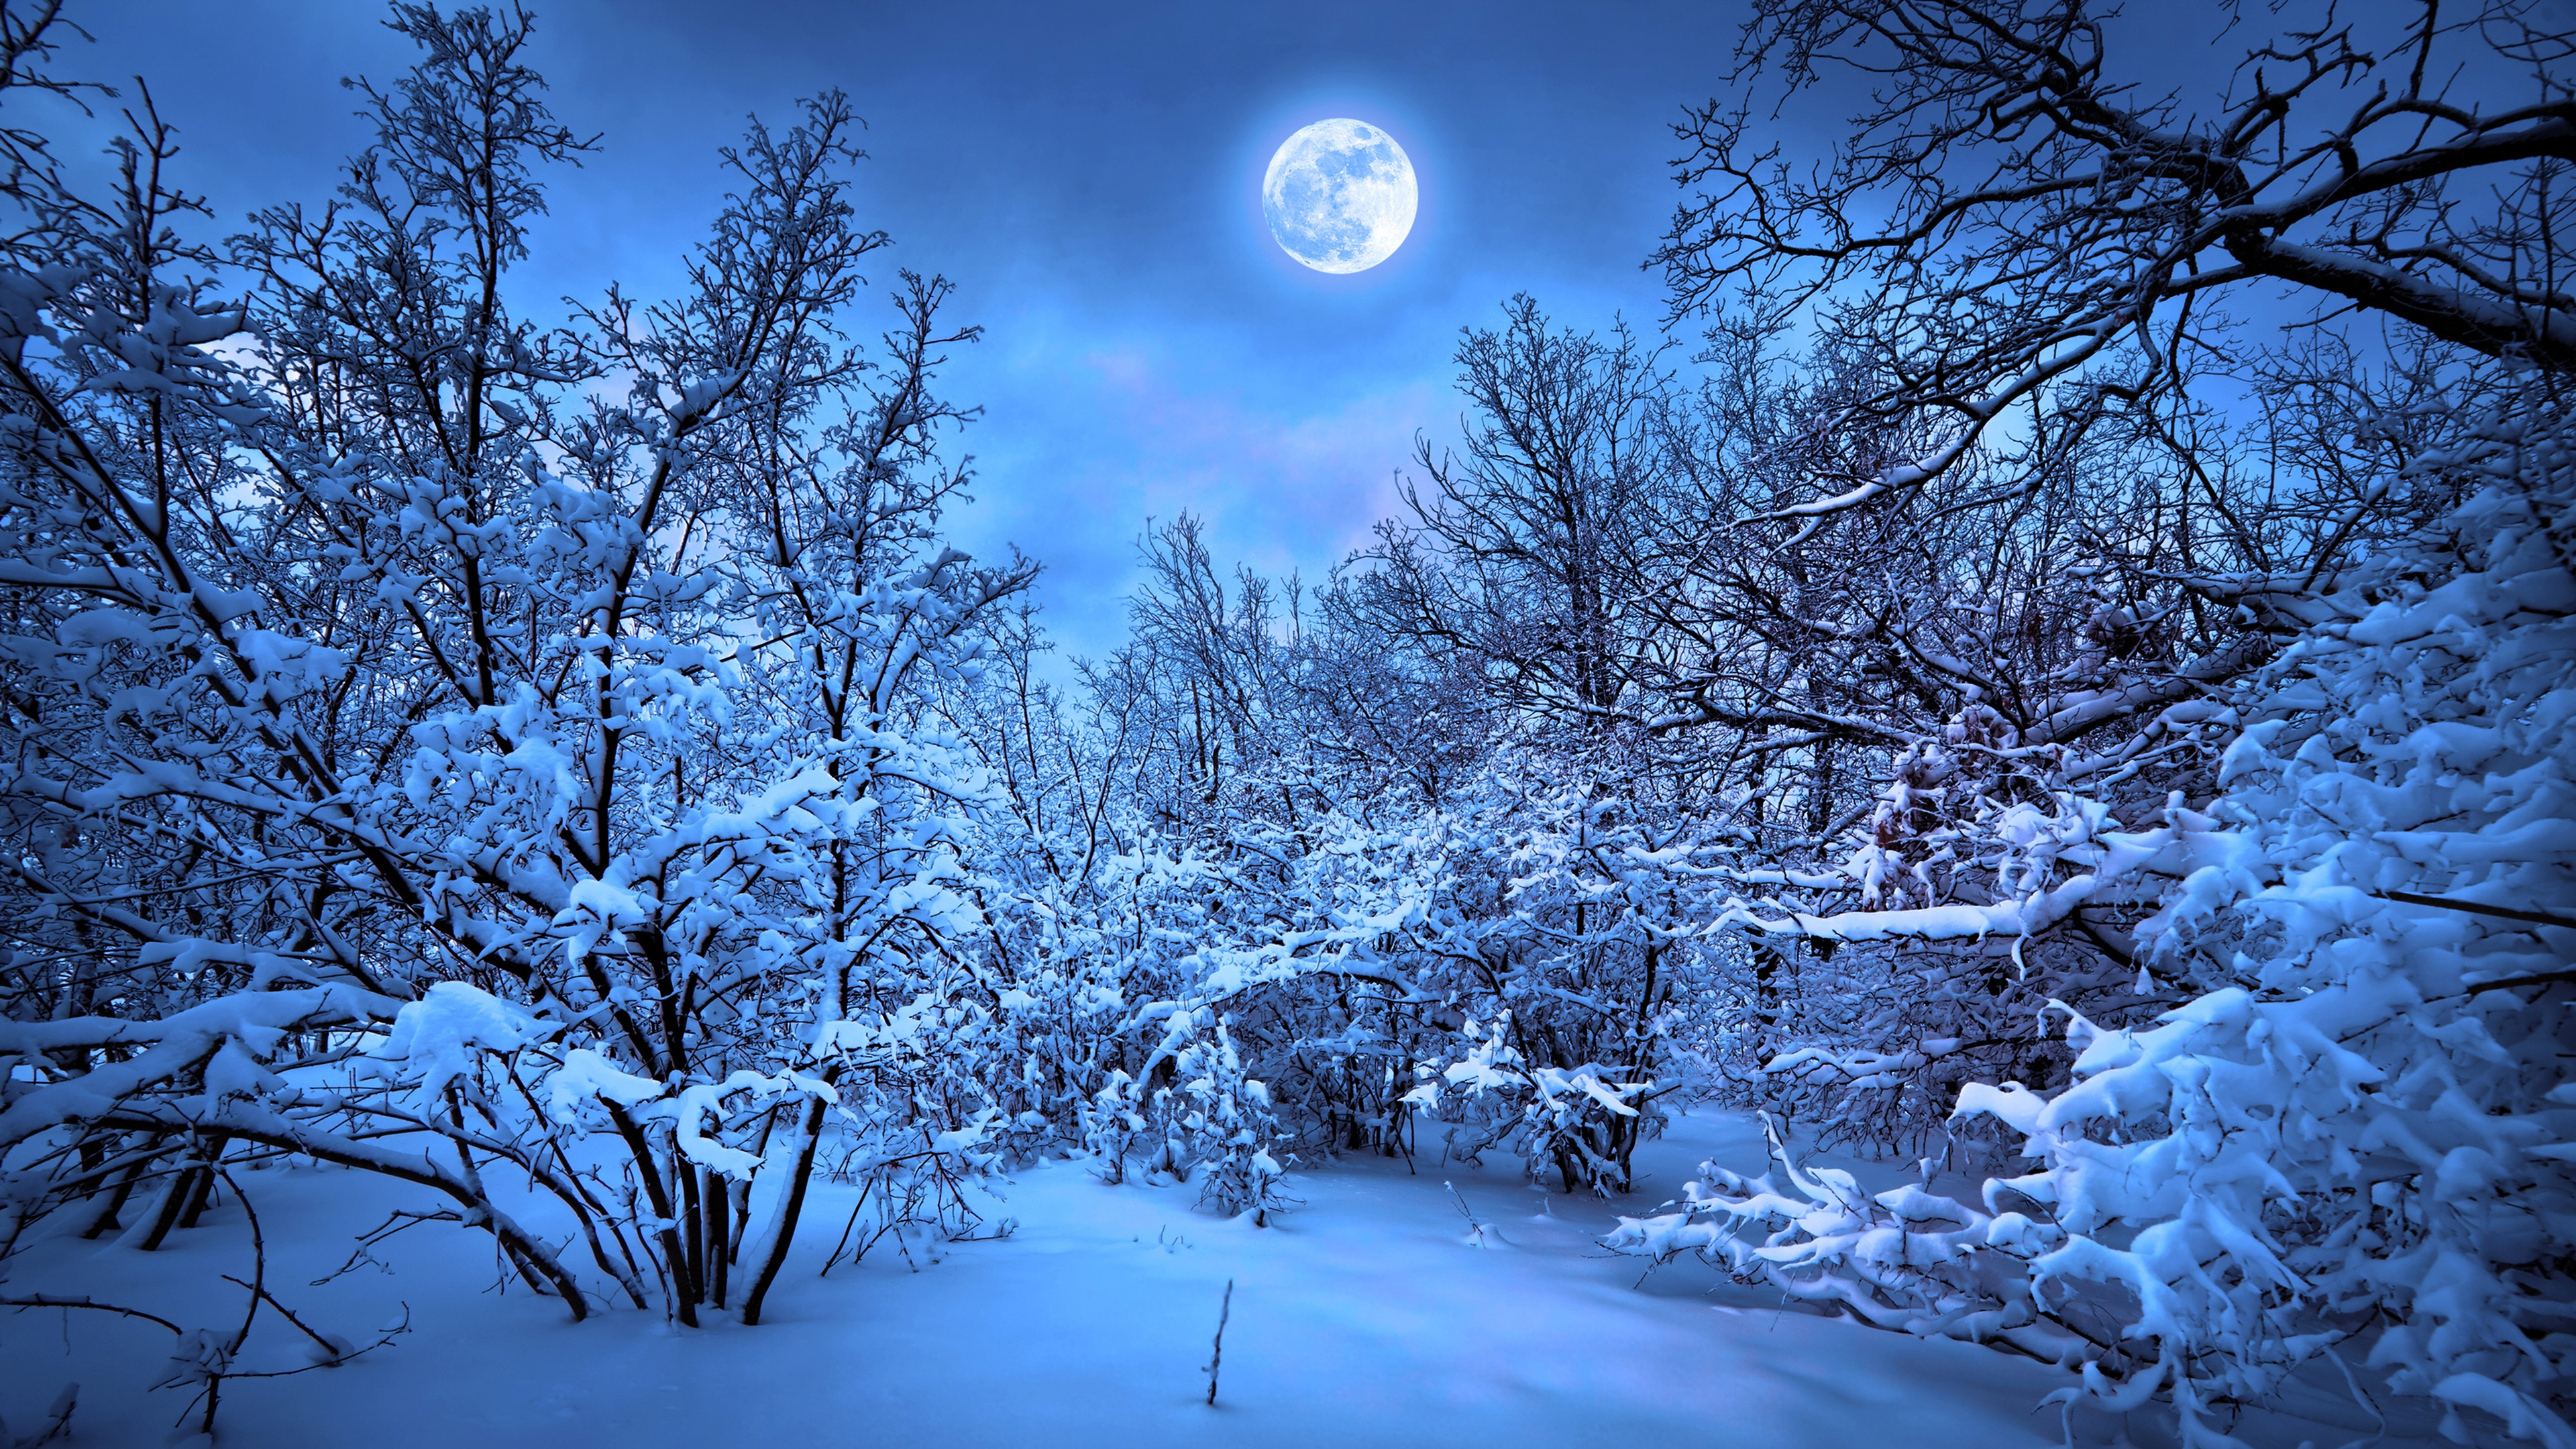 Images Winter Nature Moon Snow forest Evening Branches 3840x2160 Forests